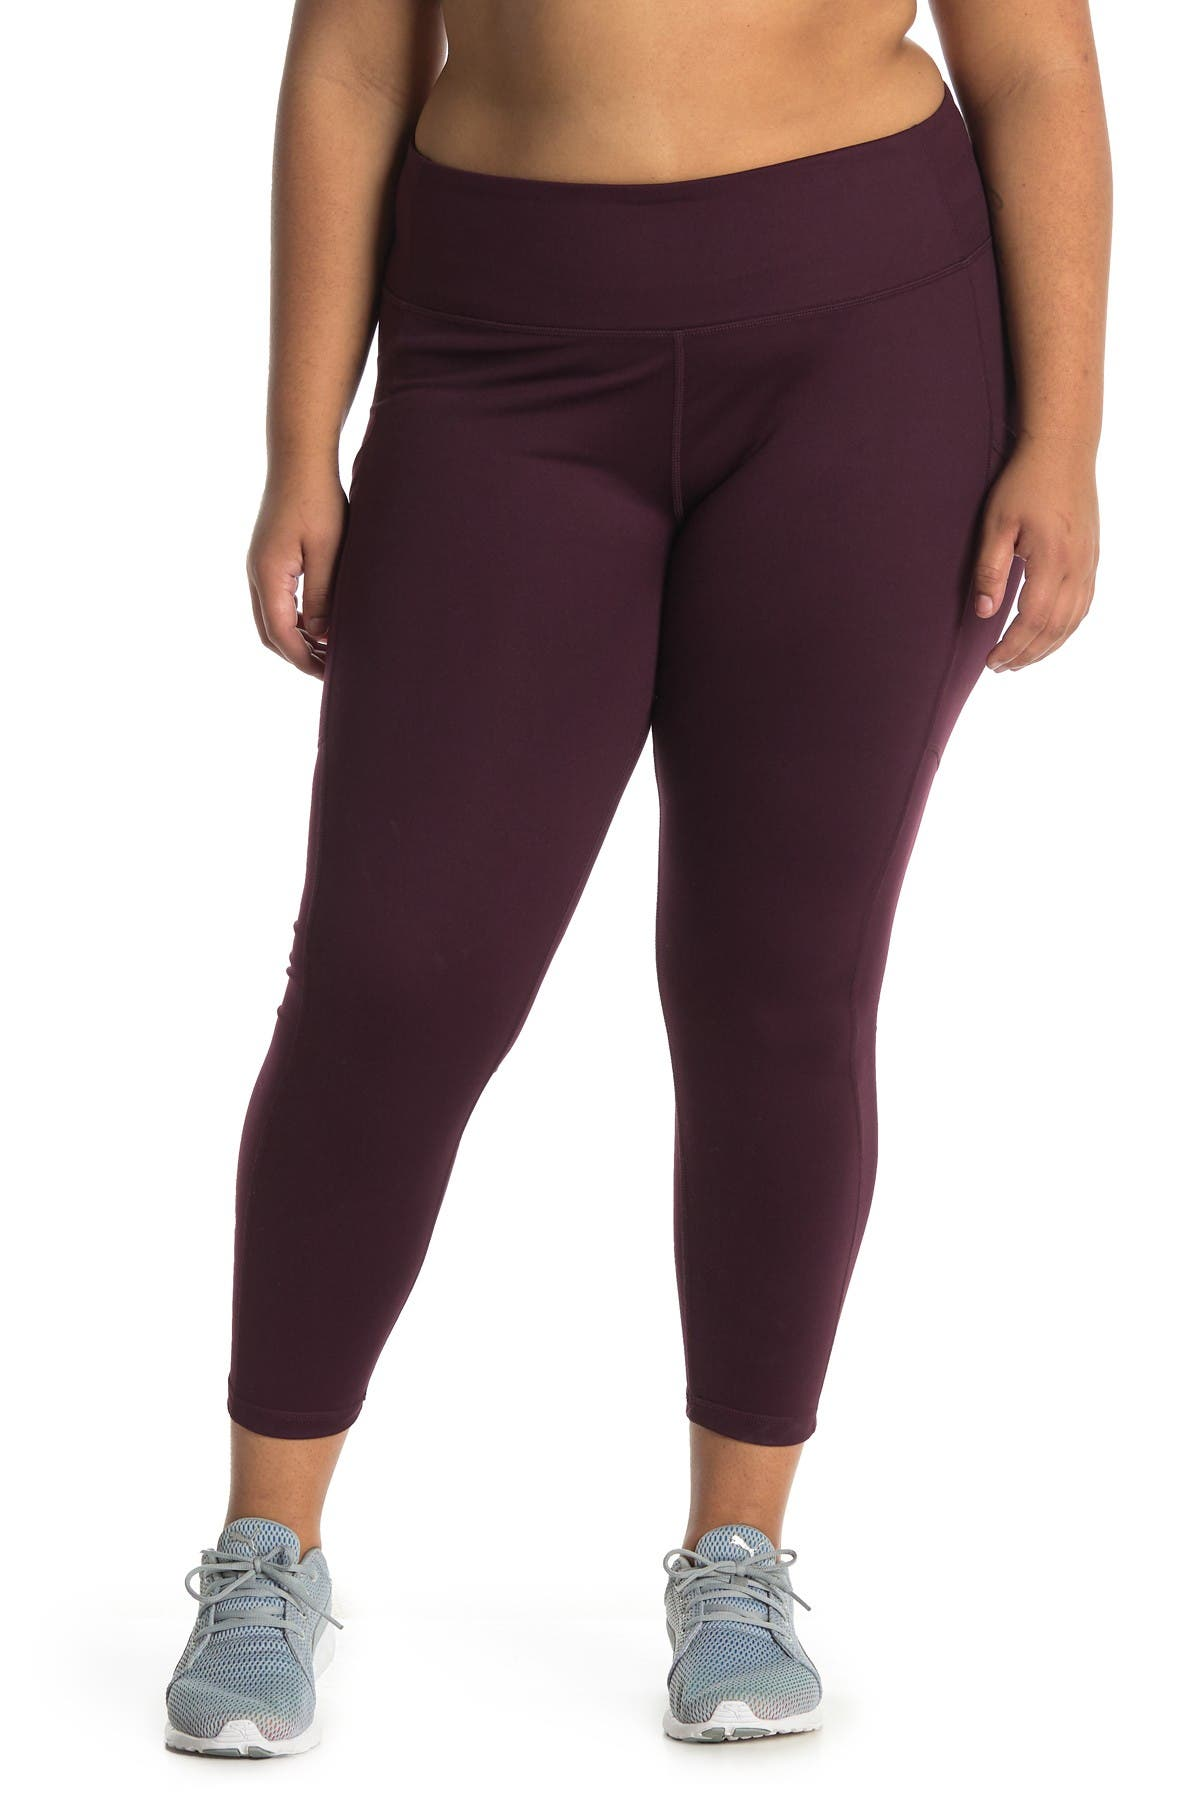 Image of Z By Zella High Waisted Daily Pocket Leggings